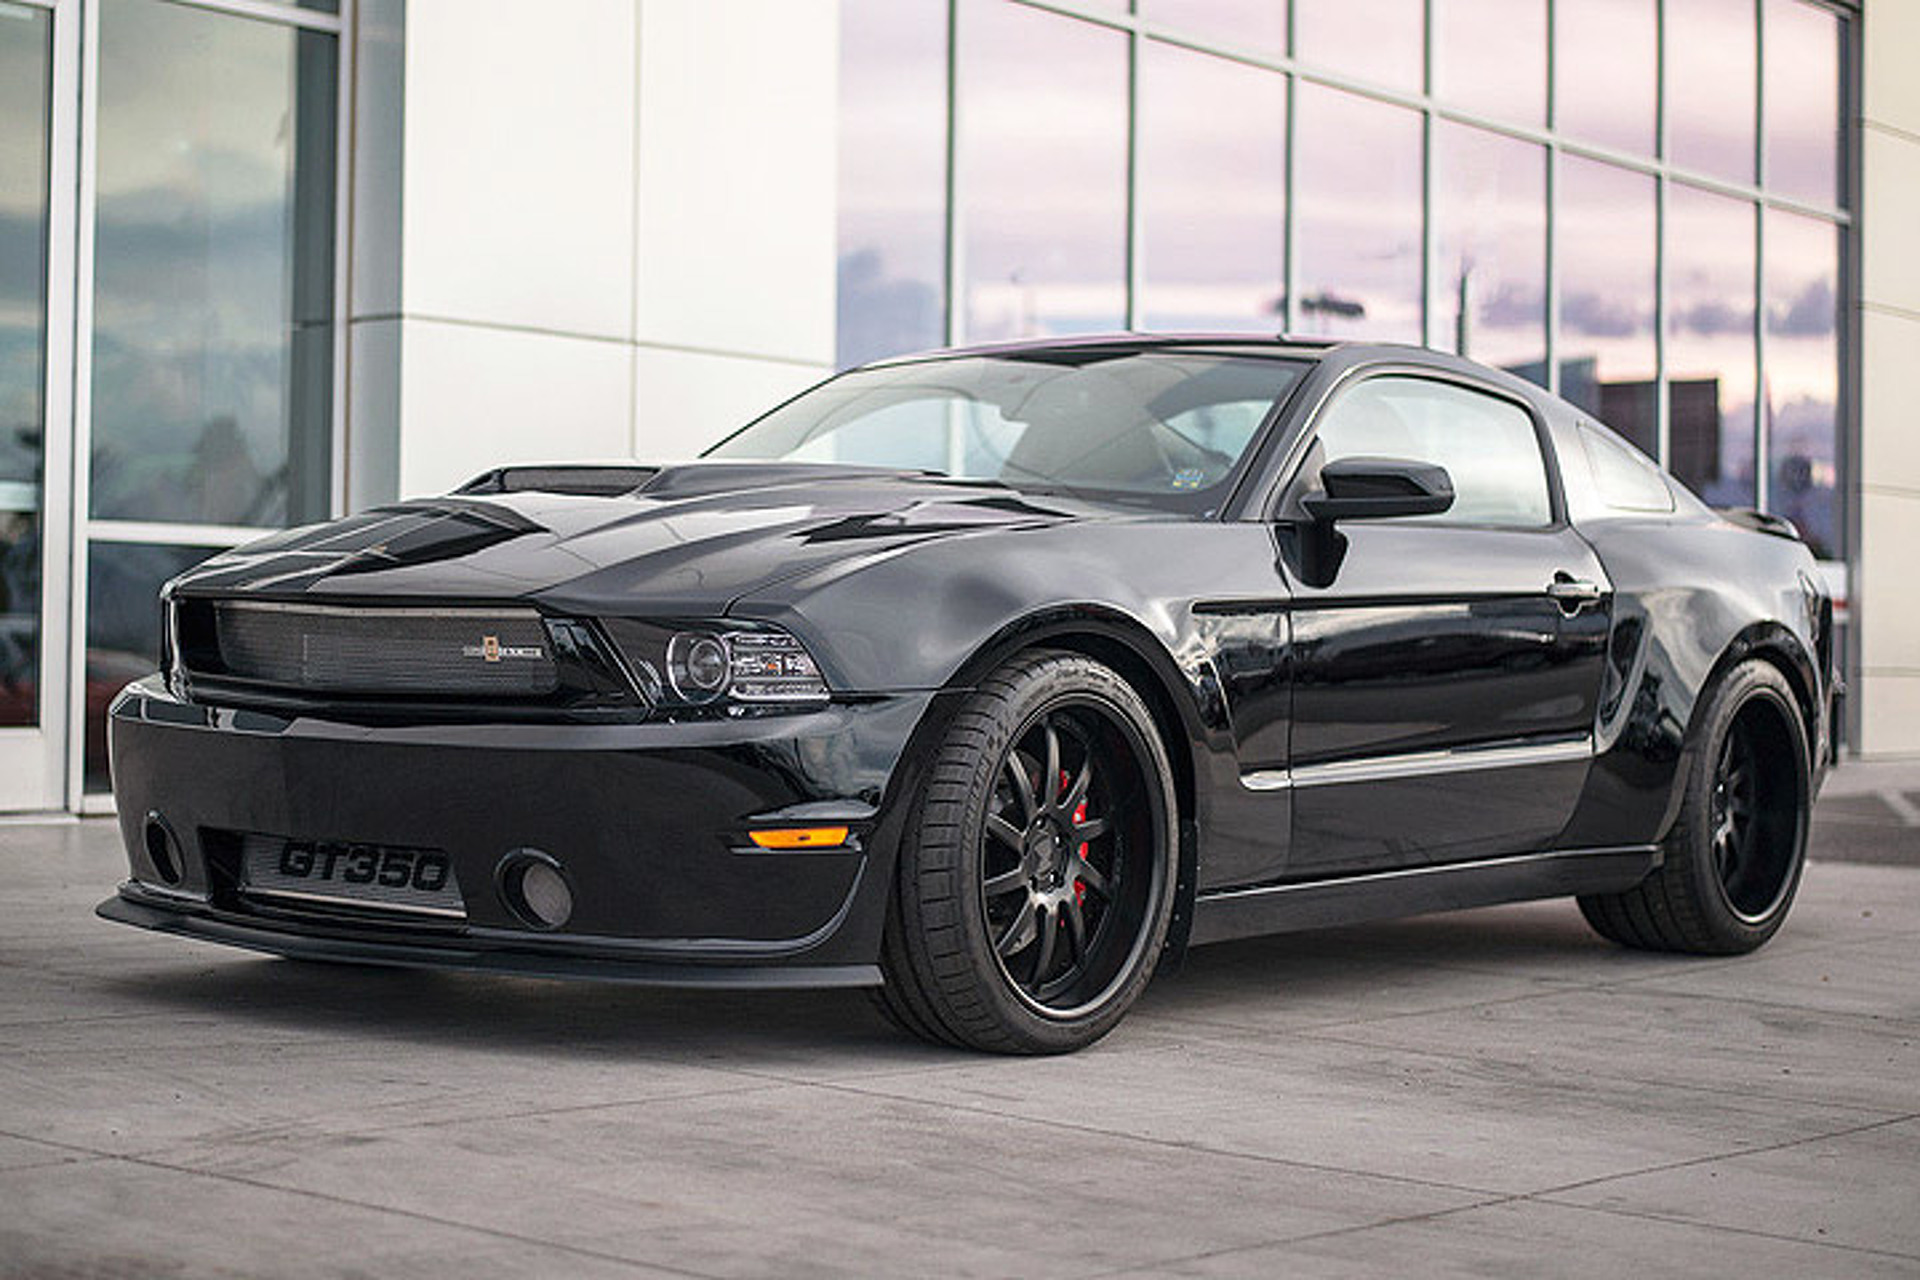 2013 shelby or 2016 shelby which mustang gt350 would you buy